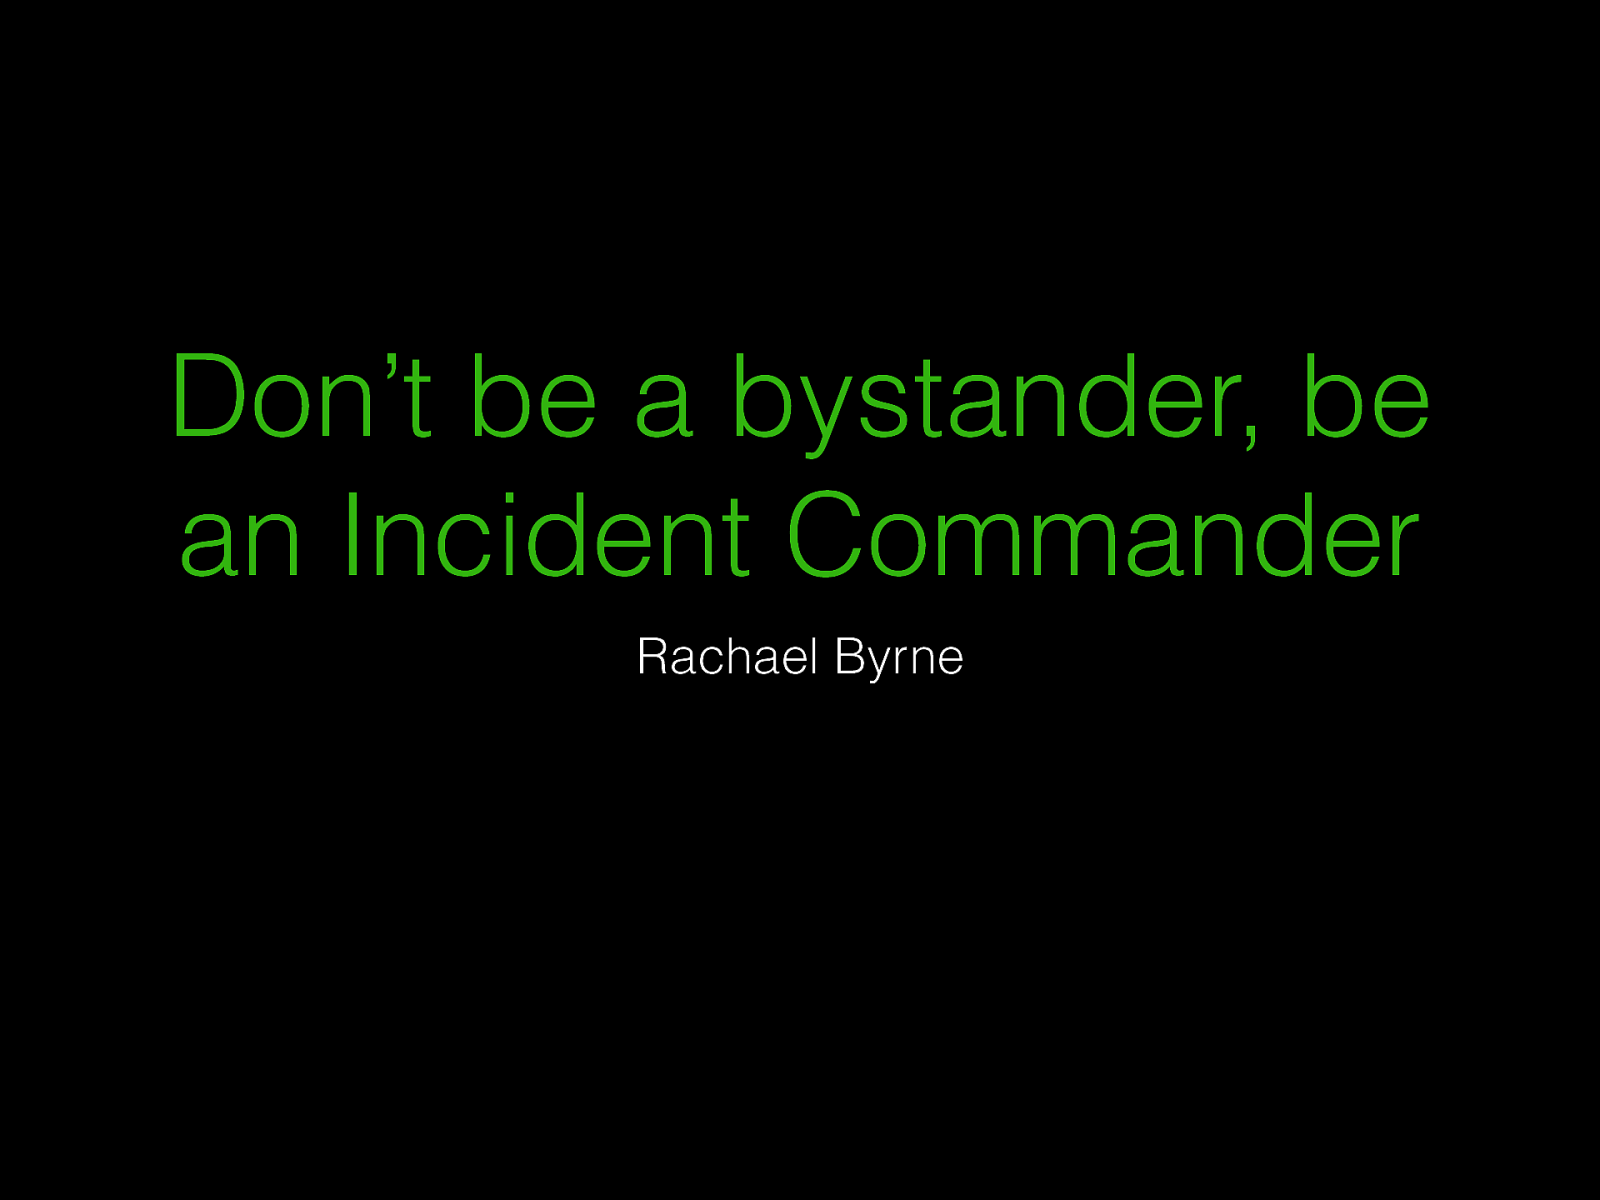 Don't Be a Bystander, Be an Incident Commander